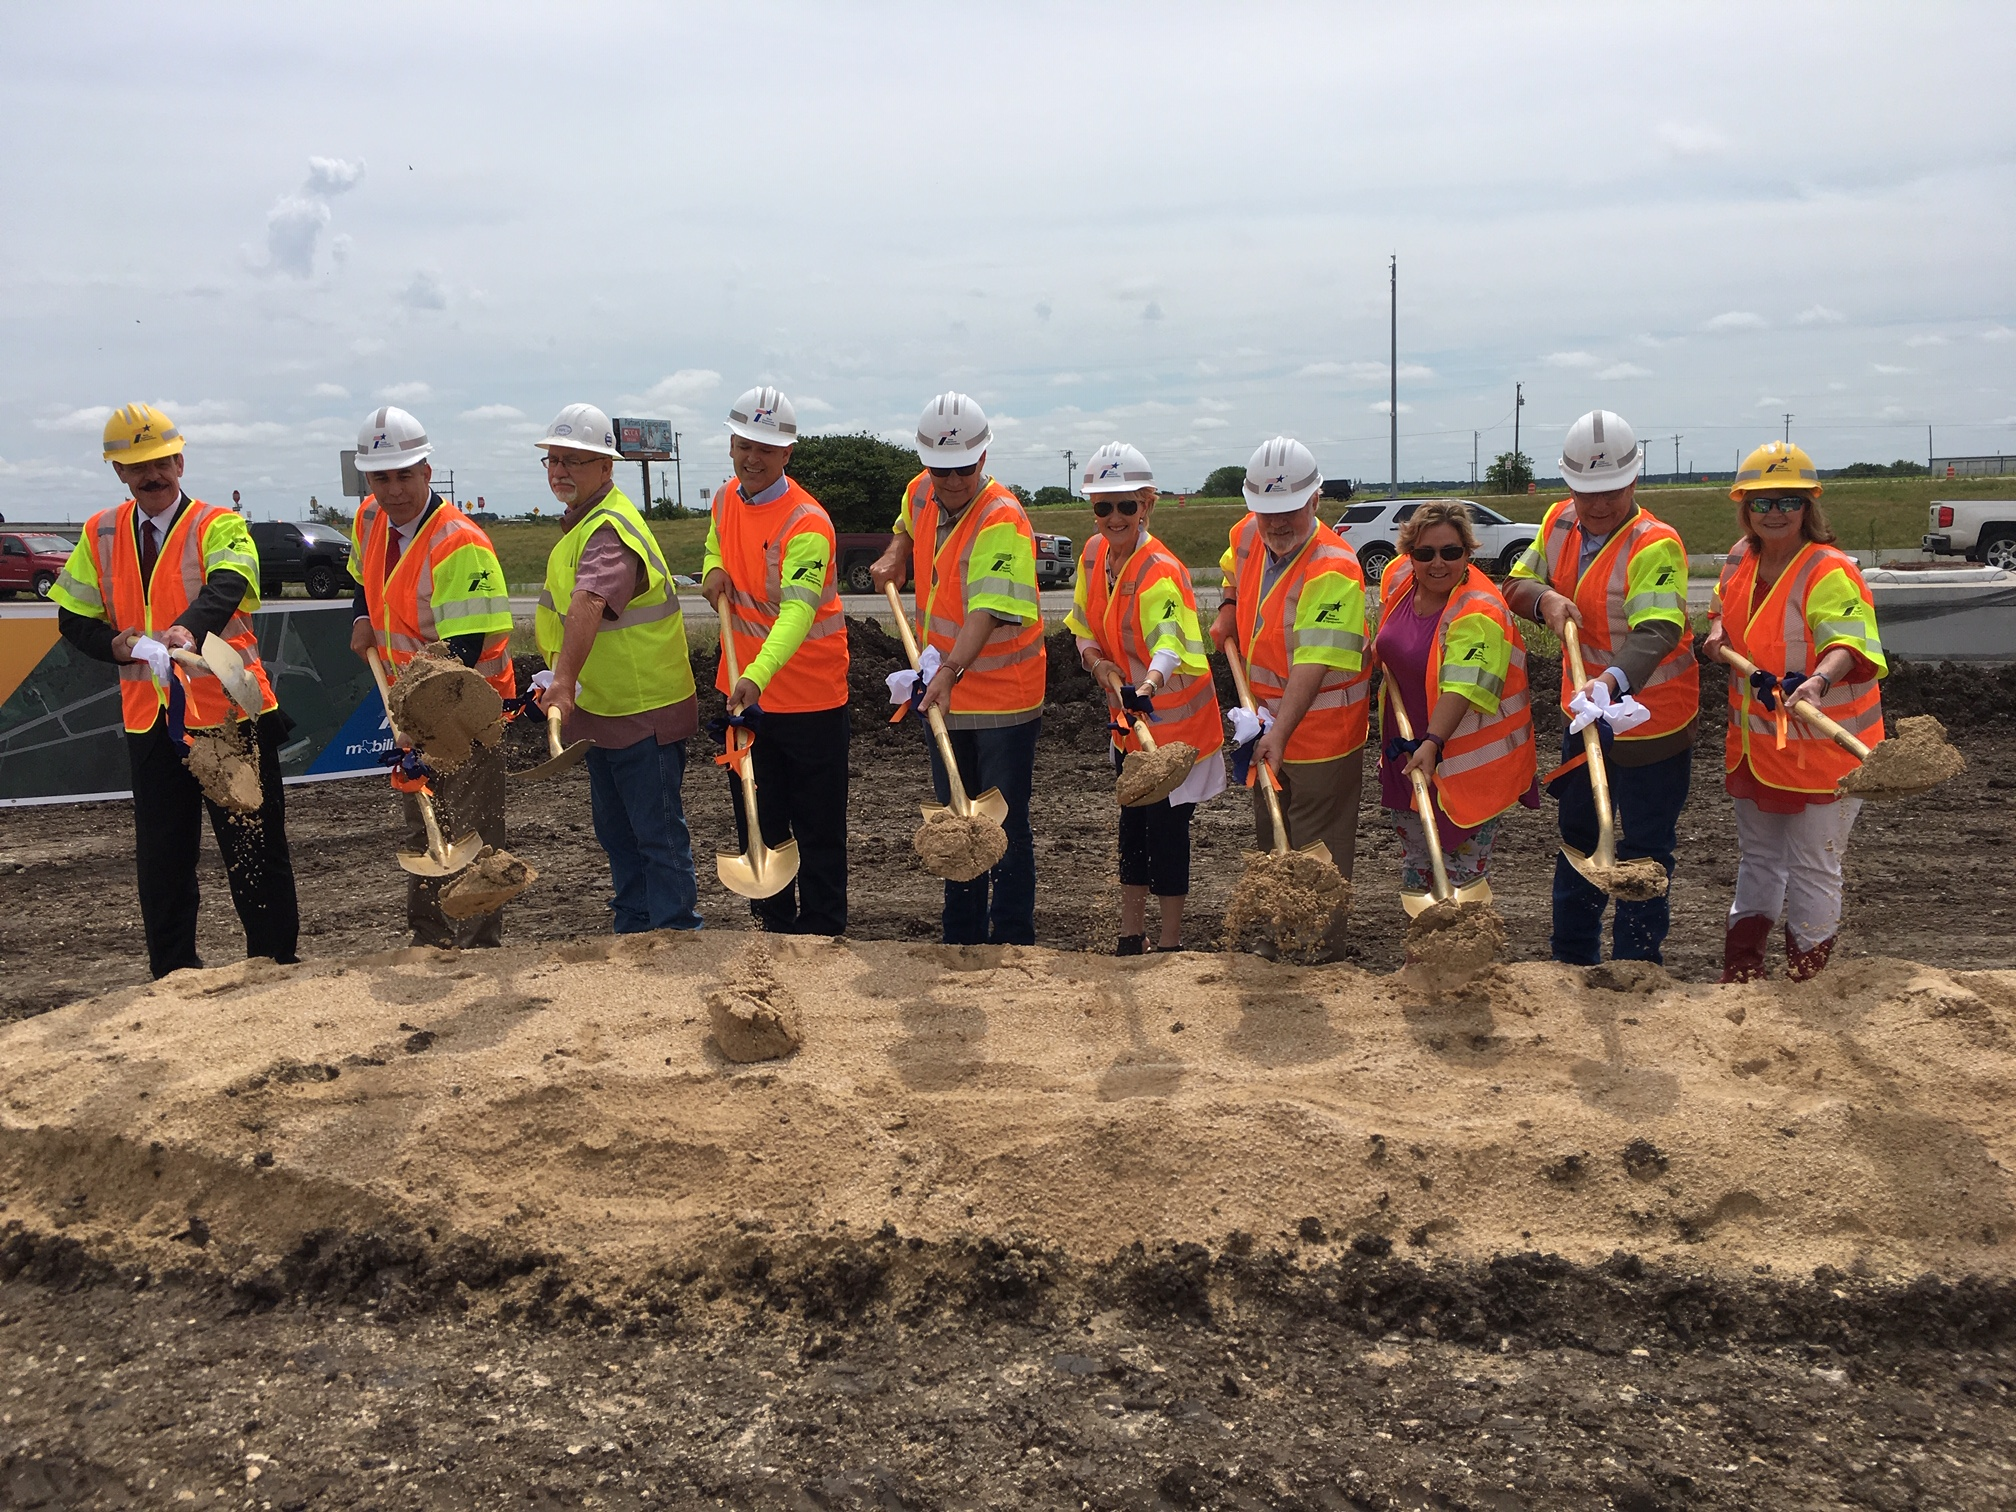 I-35 at Ronald Reagan Boulevard Groundbreaking